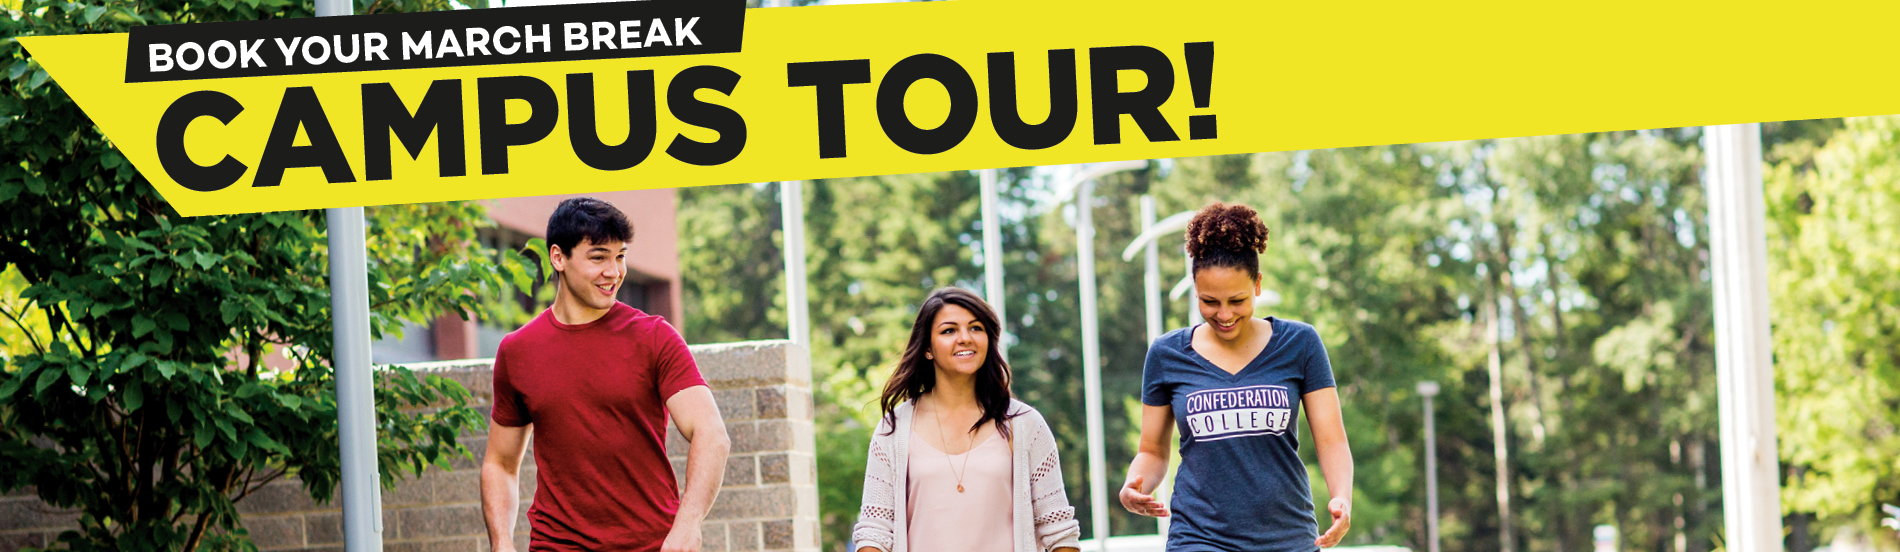 CLICK ... to sign up for a March Break Tour ...